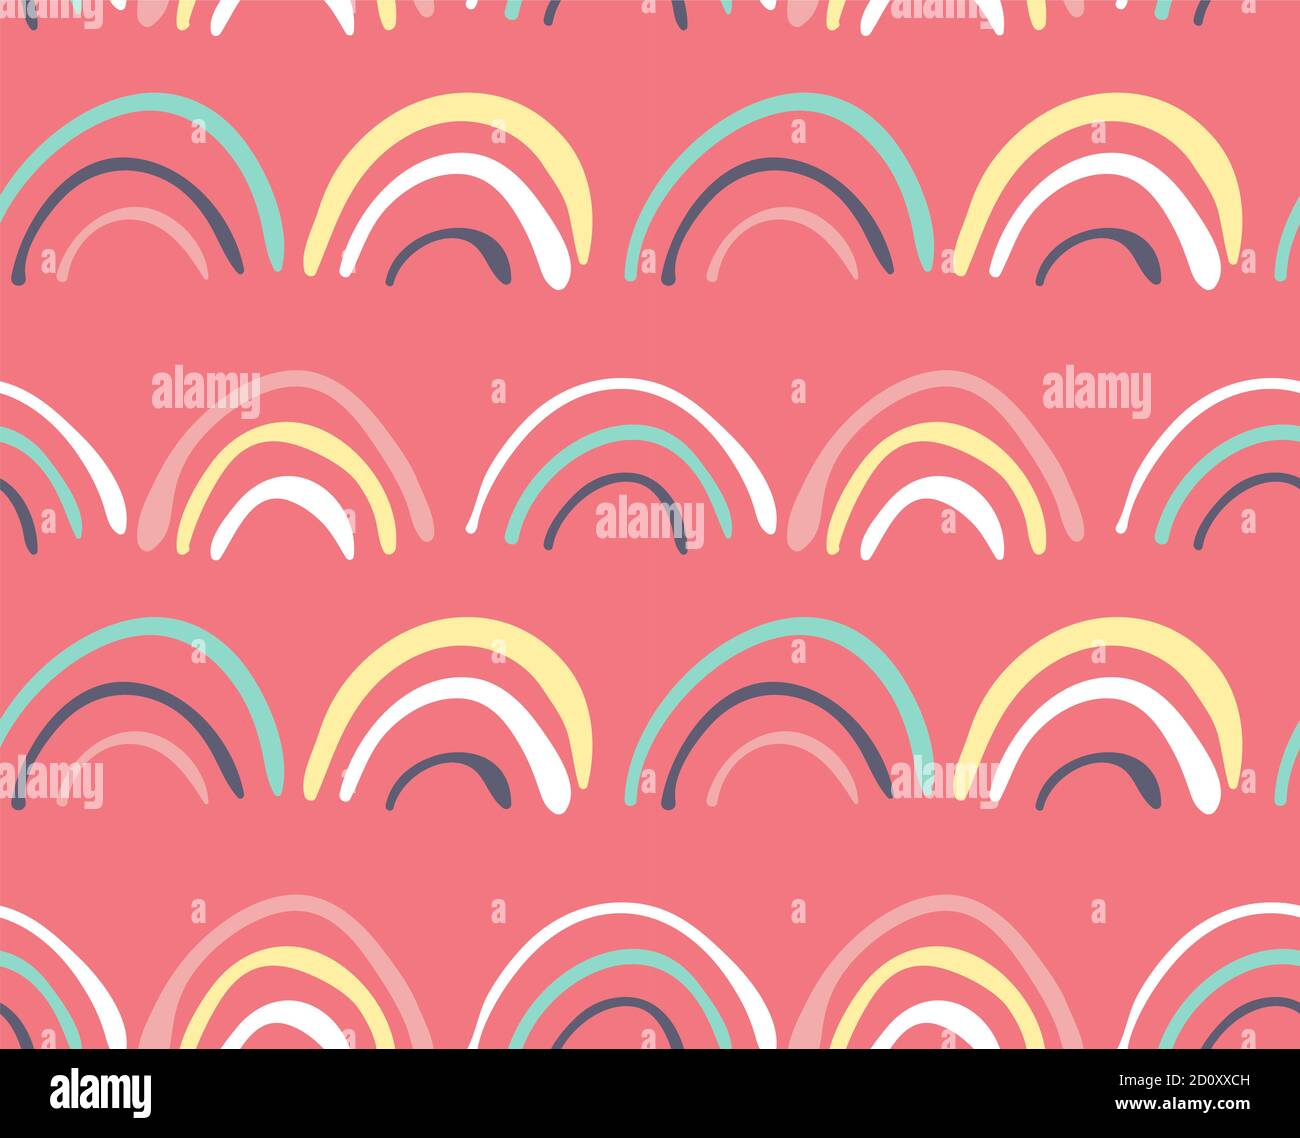 Doodle rainbows on pink background, seamless patterns Stock Vector